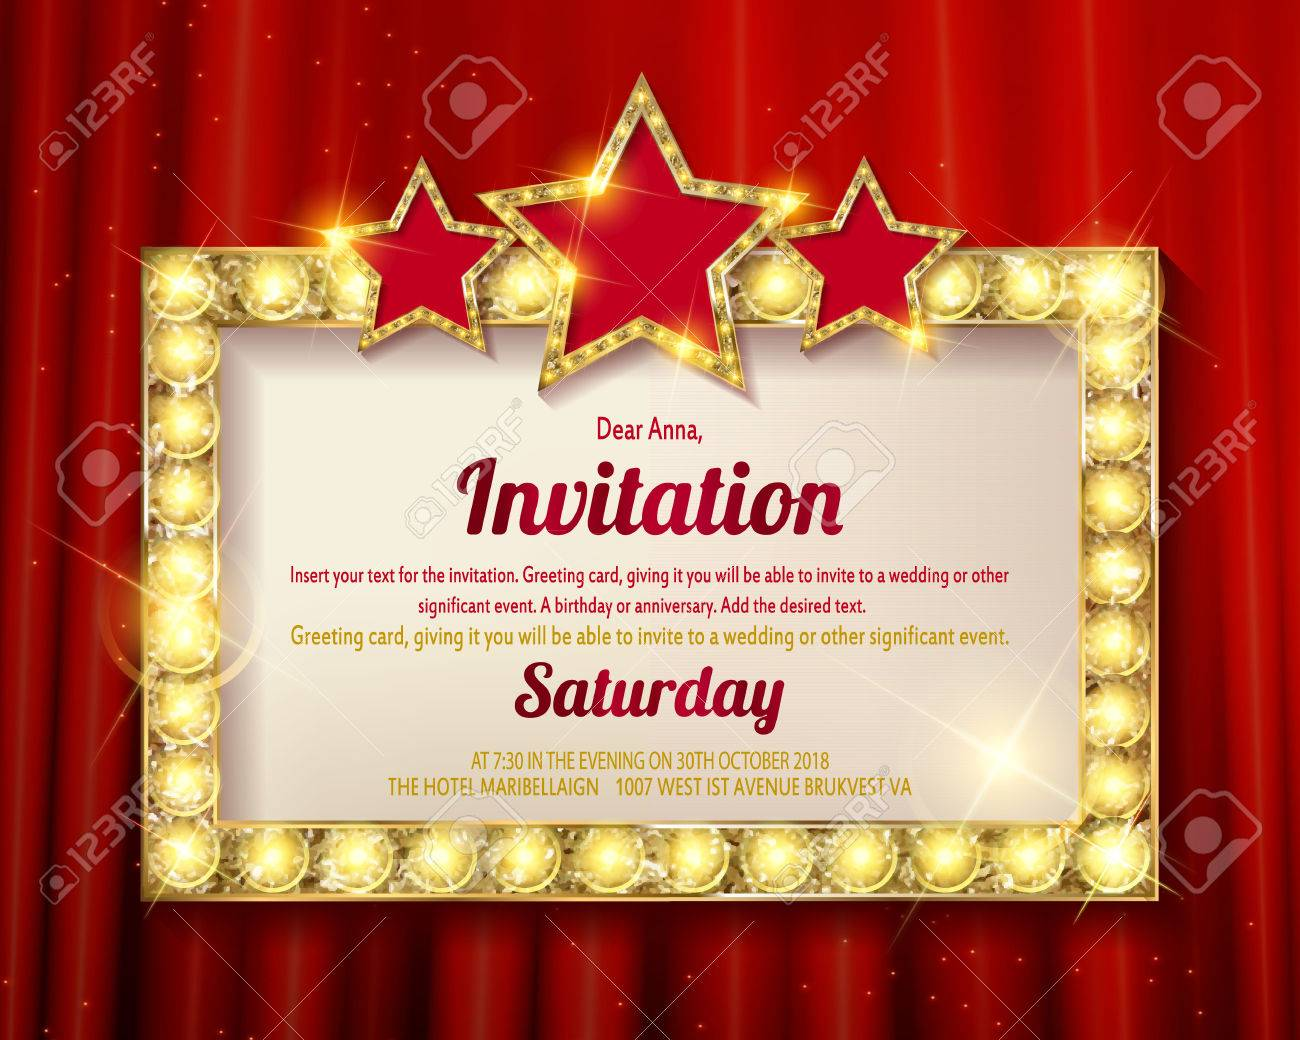 Invitation card. Glowing Golden frame with stars. Flyers, invitation,..